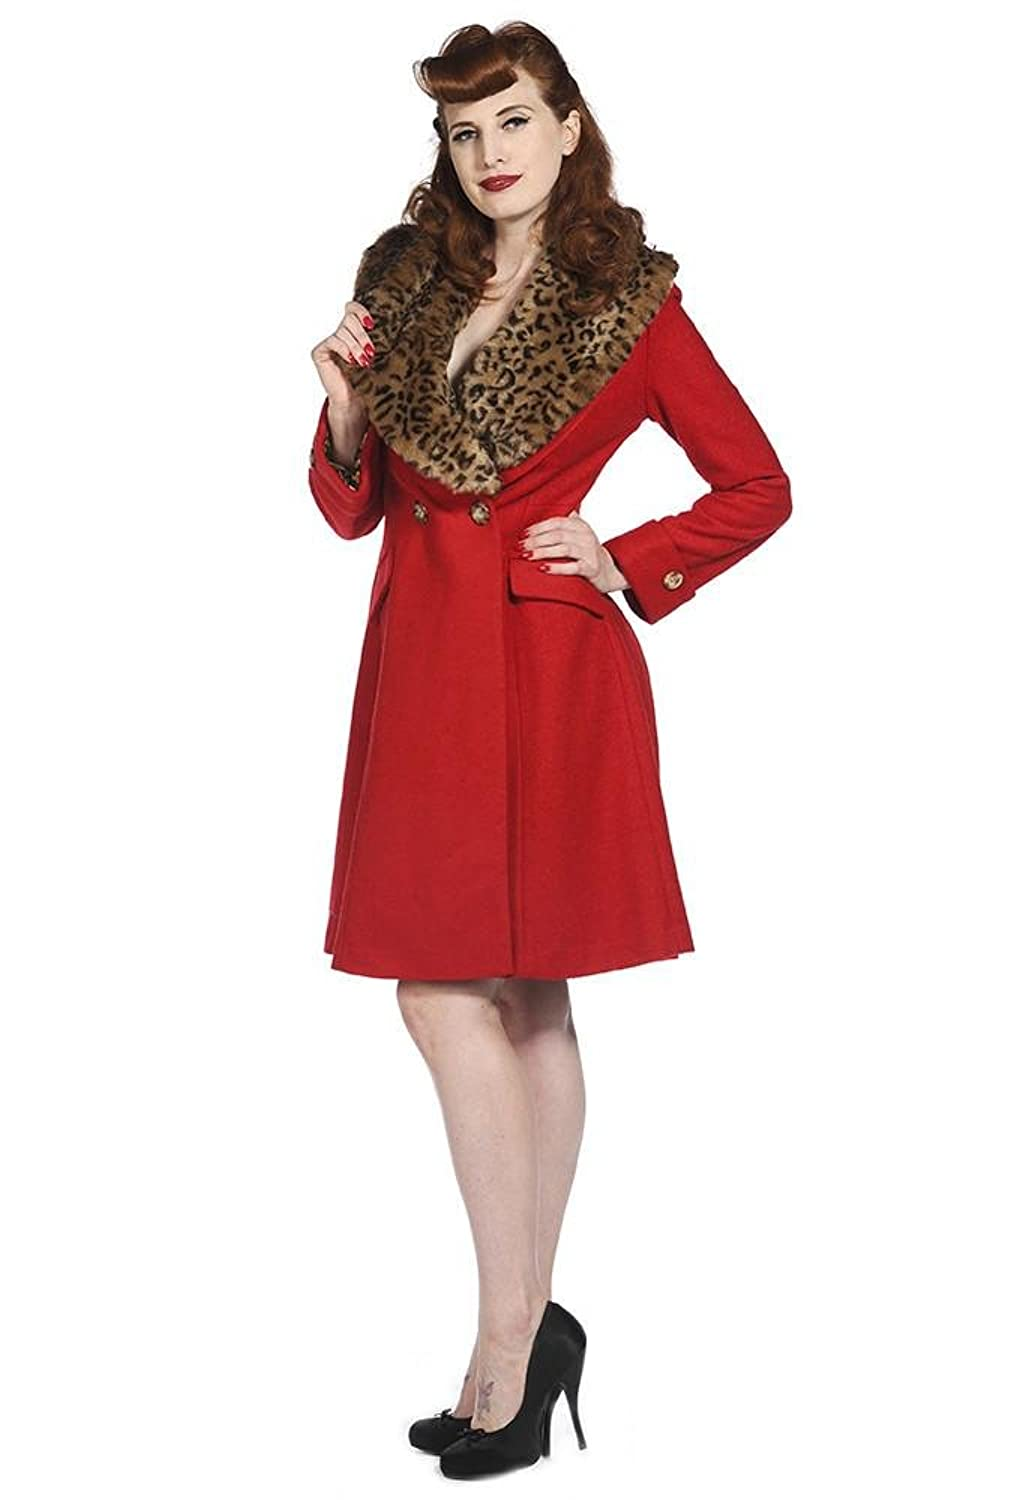 1950s Jackets, Coats, Bolero | Swing, Pin Up, Rockabilly Banned Clothing Red Vintage Coat $157.73 AT vintagedancer.com